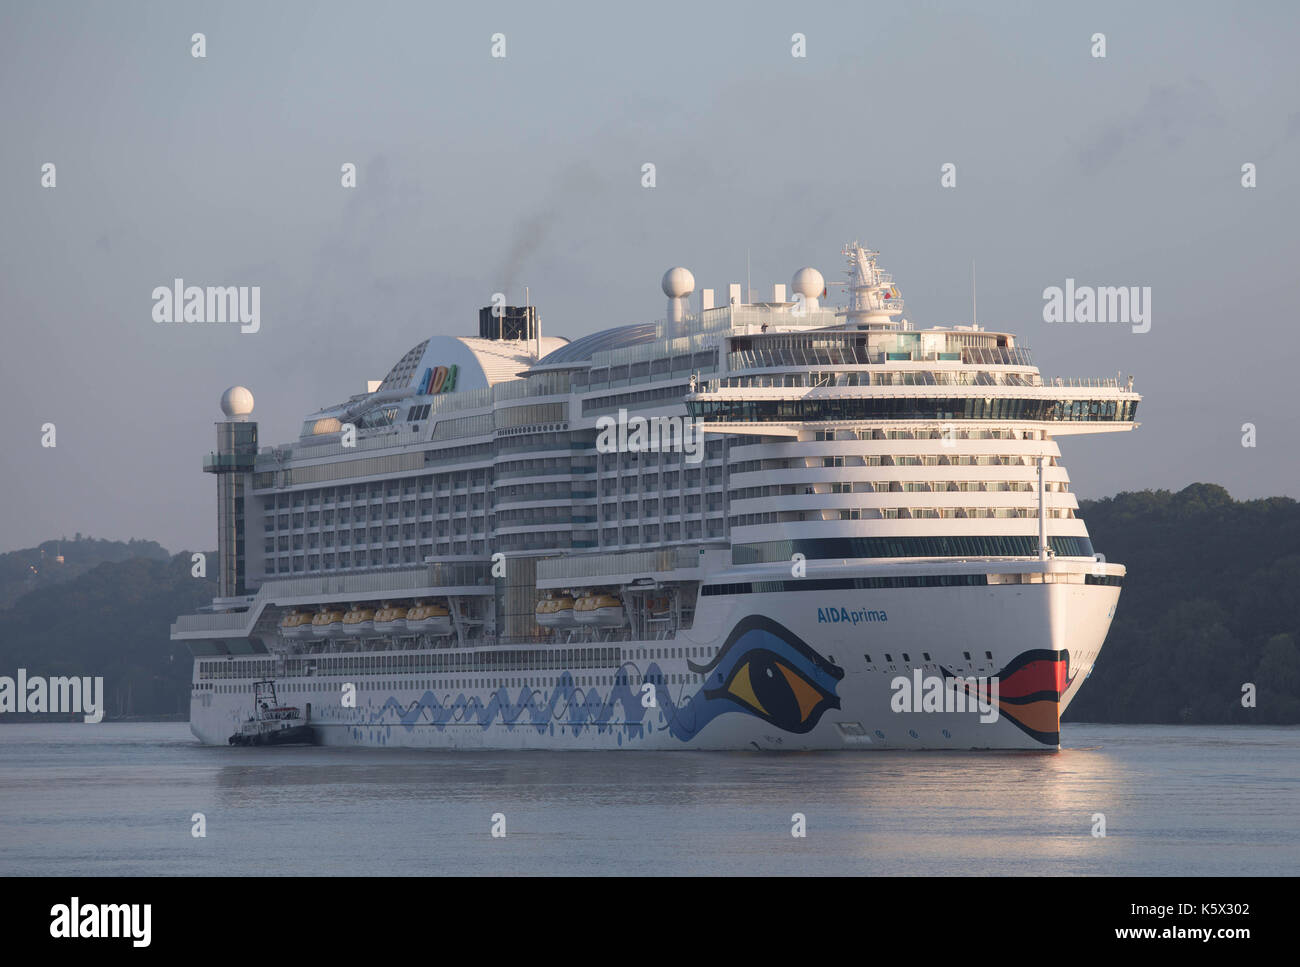 Hamburg, Germany, June 10, 2017 - Crusising Ship Aida Prima is entering the Port of Hamburg in the early daylight - Stock Image